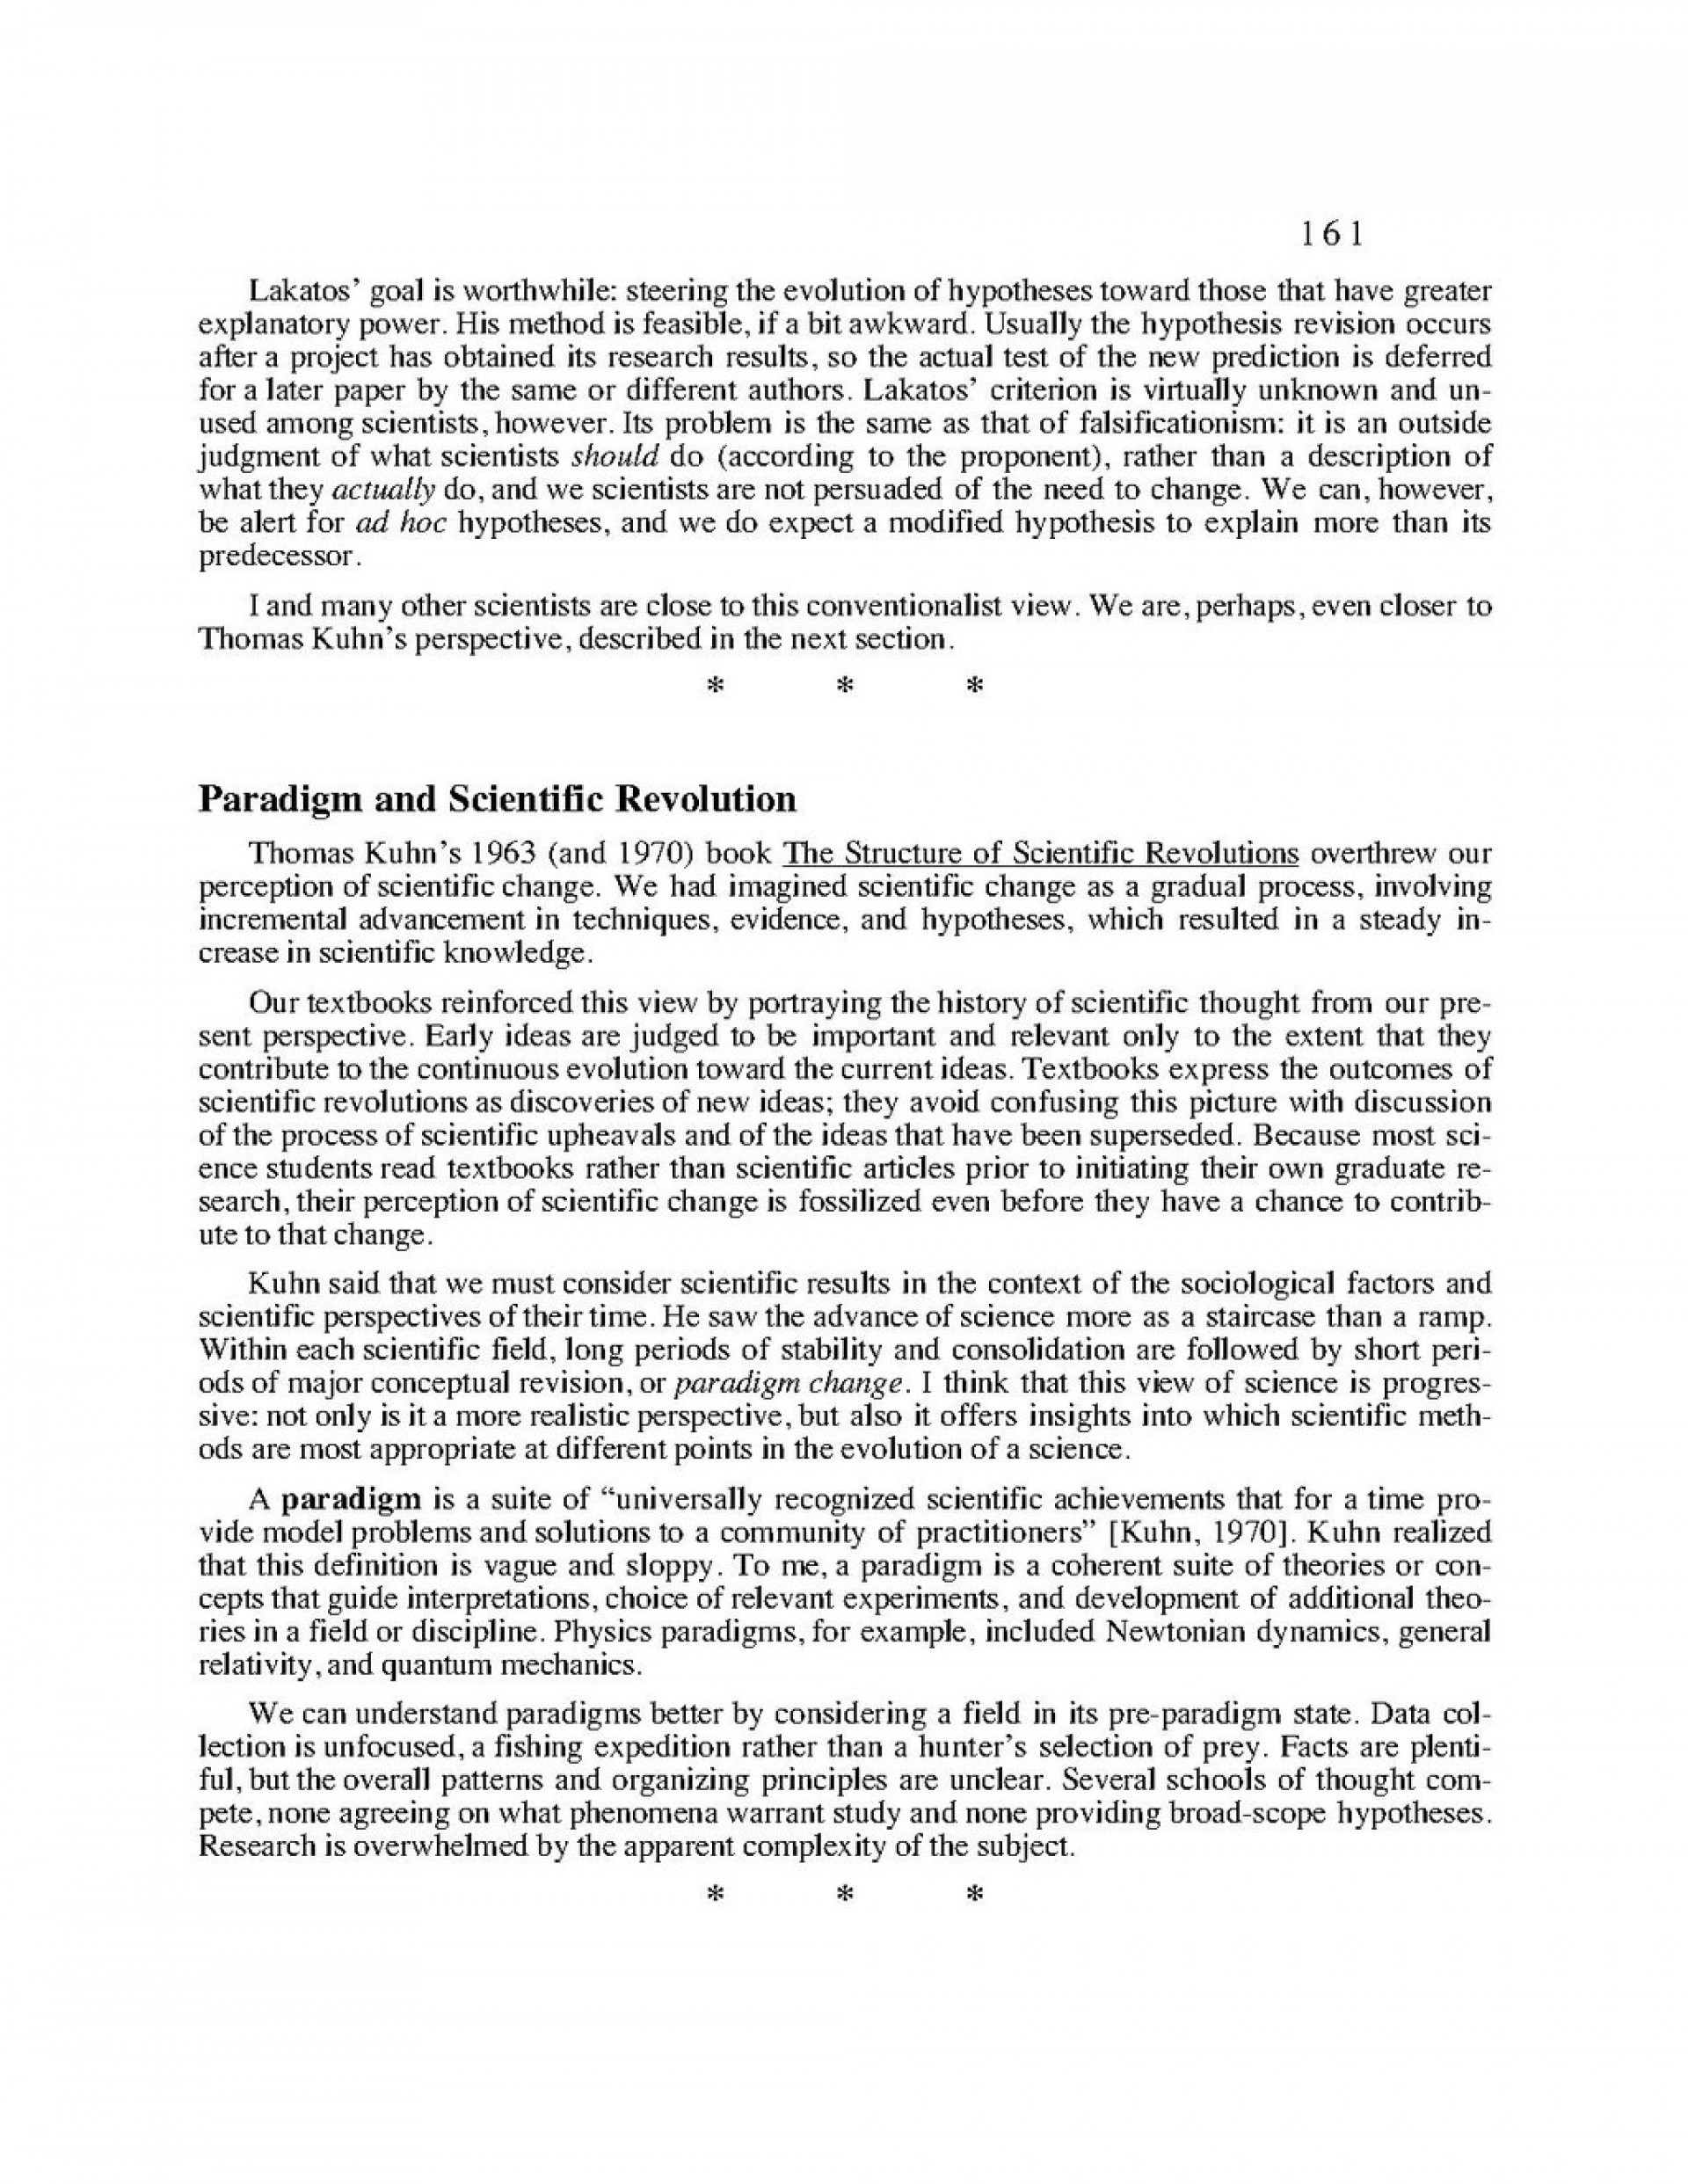 005 Research Paper Hypothesis In Pdf Page164 1024px Sm All Cc Sensational Testing 1920